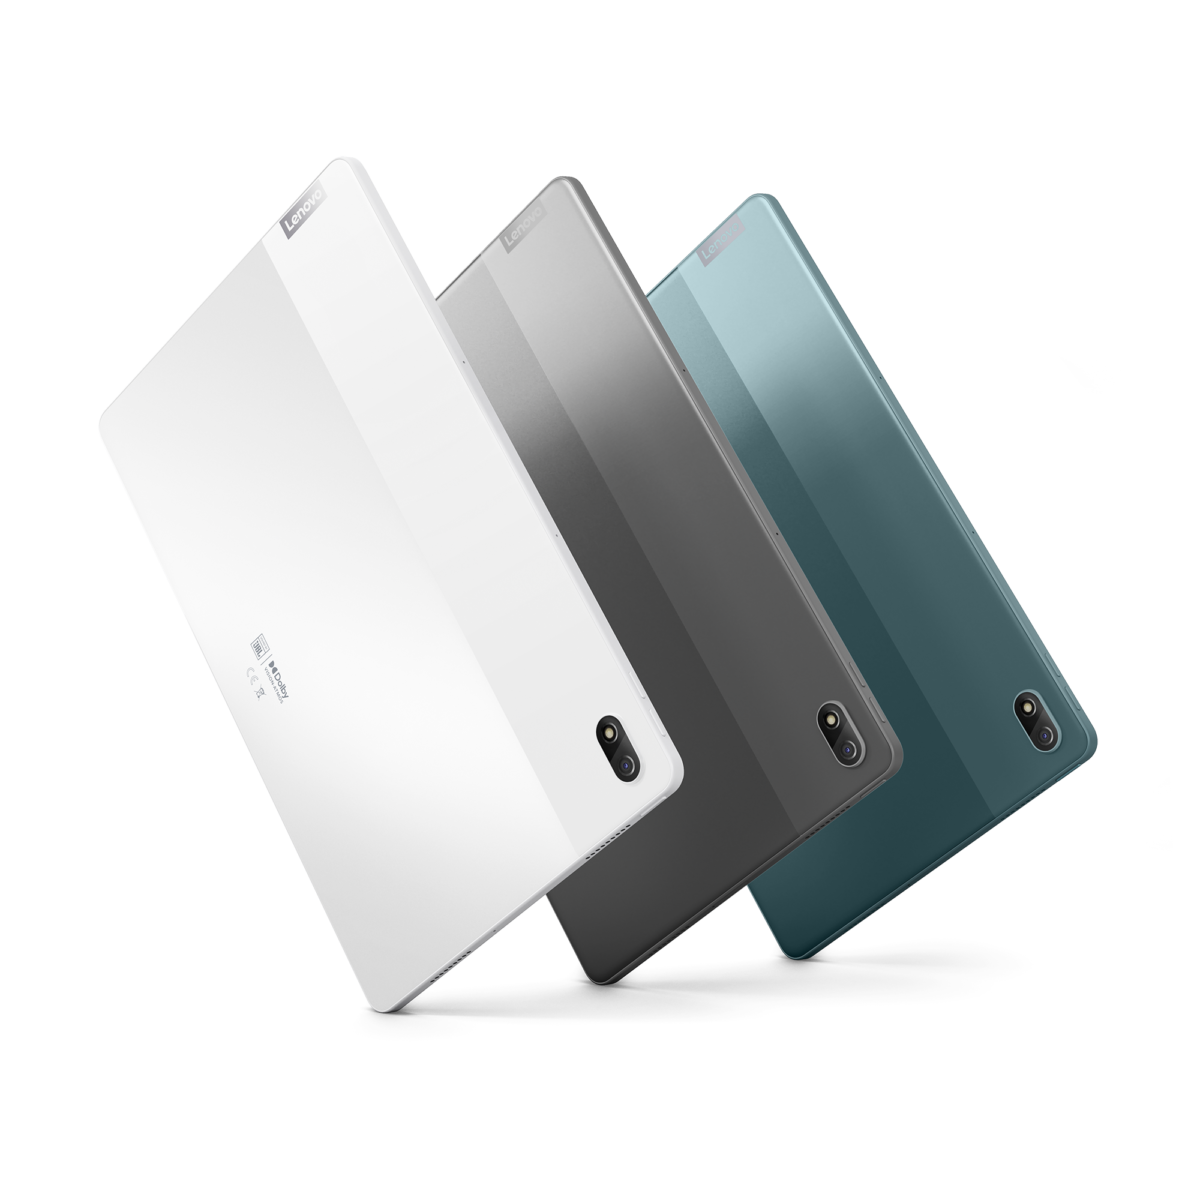 Lenovo unveils a brighter future for hybrid with premium tablets with 5G and next-gen add-ons